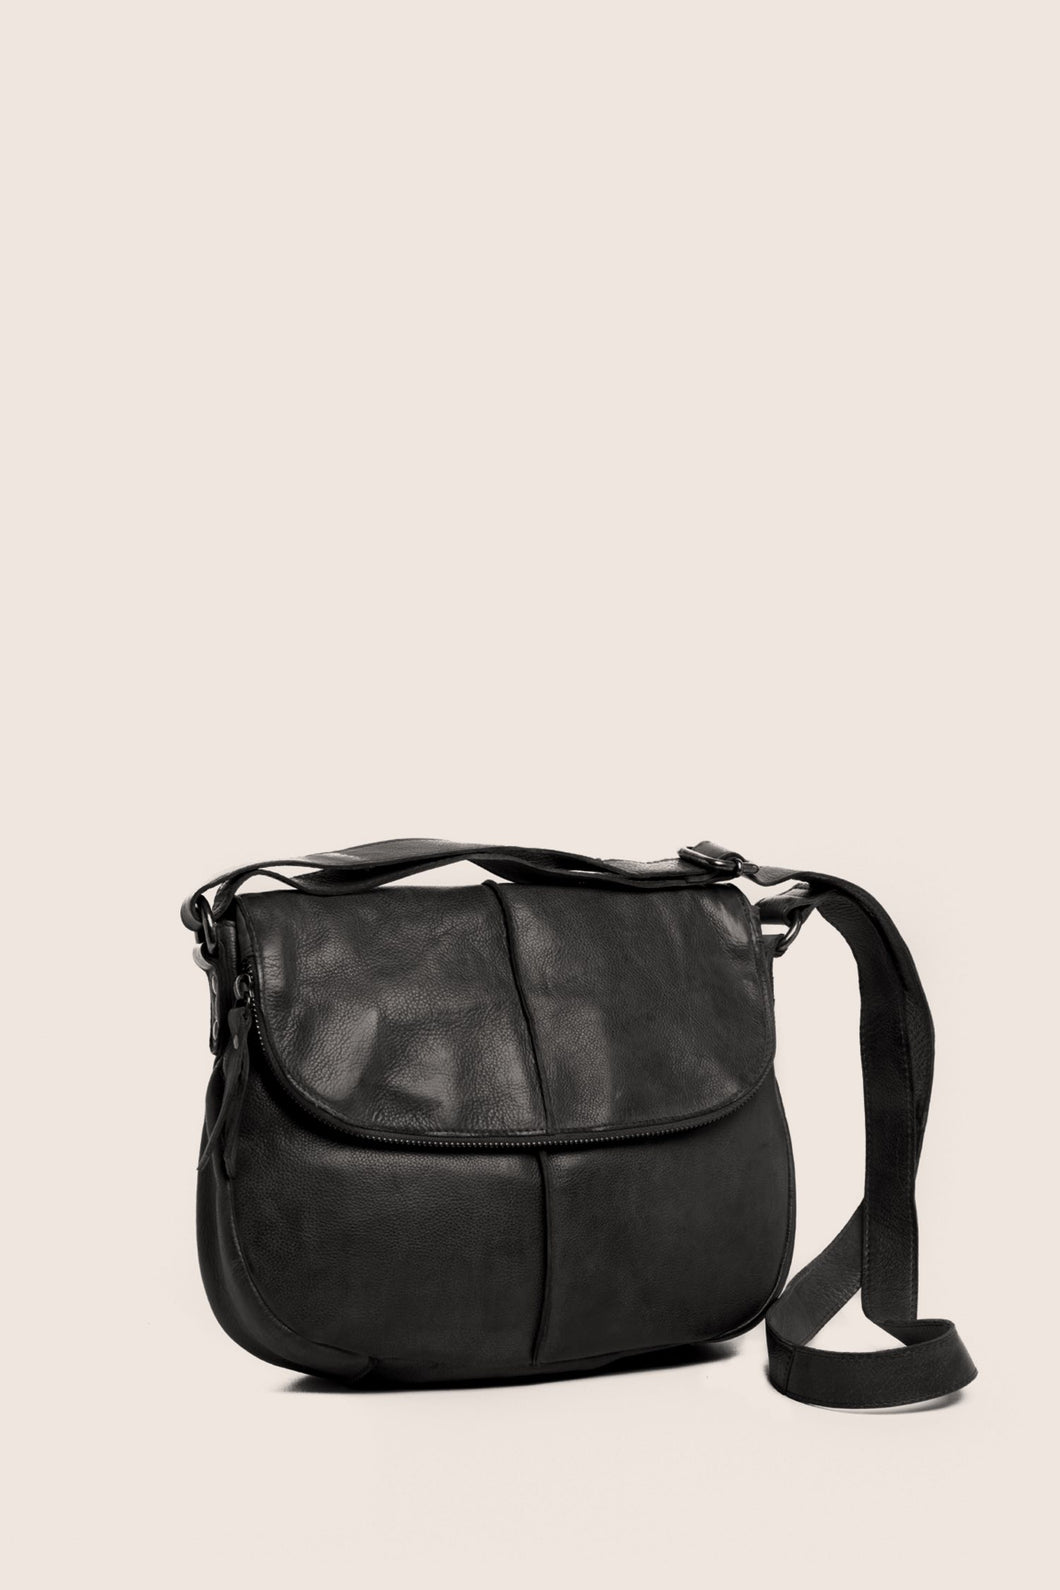 Miranda Satchel - Black